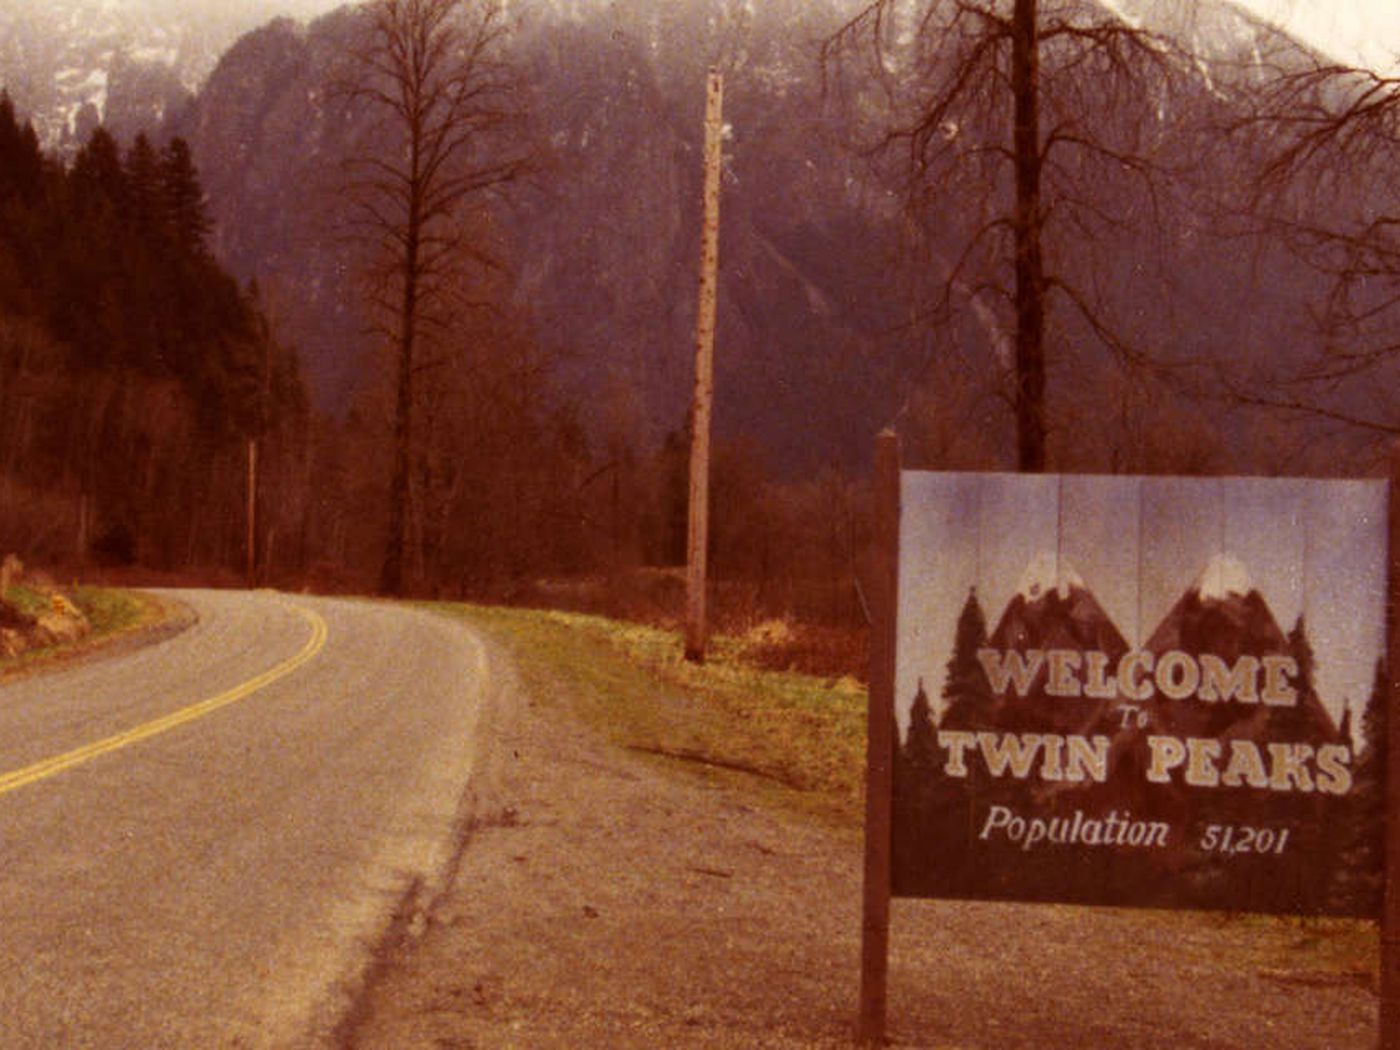 Mad Men Meets Twin Peaks Style Cocktail Bar To Open In Mepa